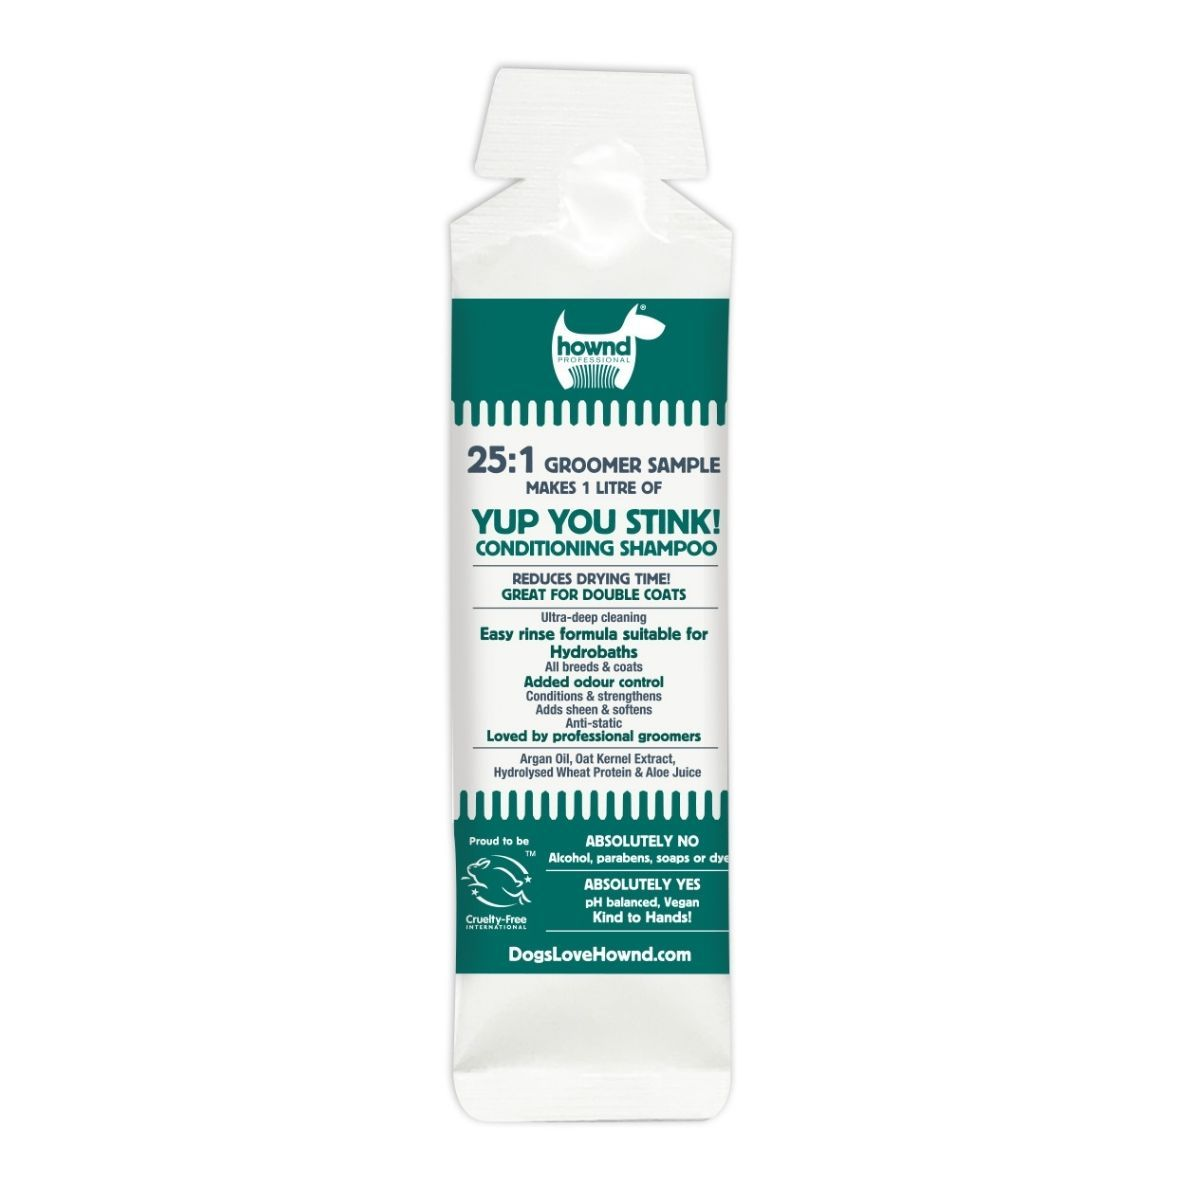 25:1 Yup You Stink! Conditioning Shampoo Sample (40ml) - Hownd